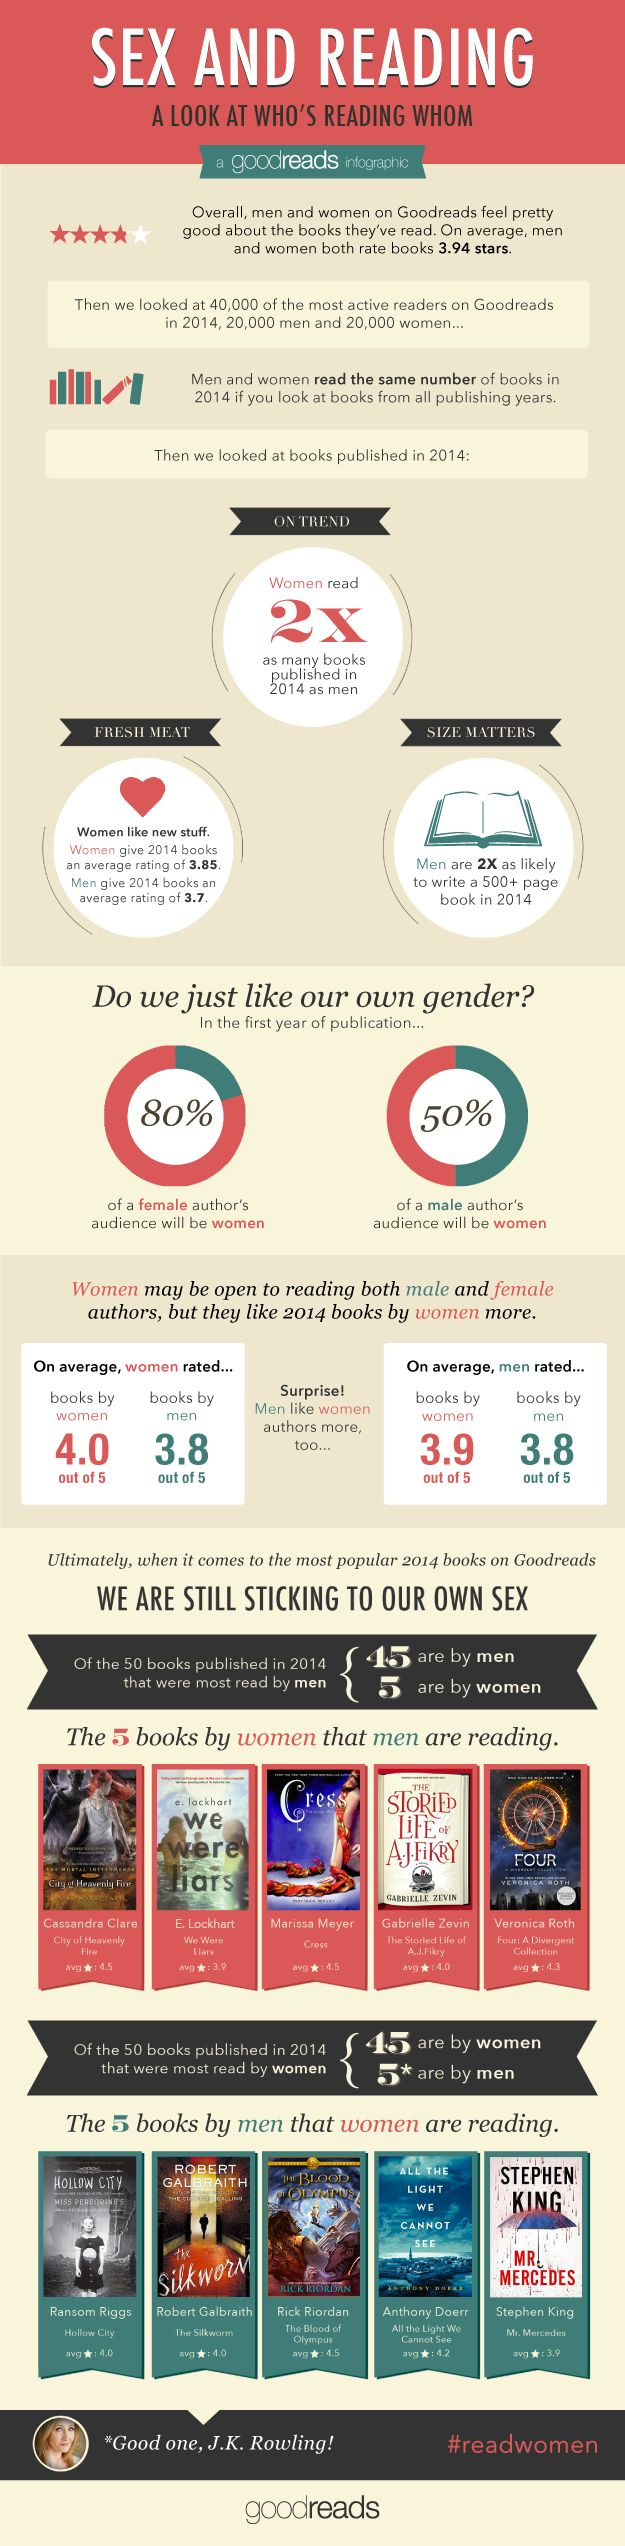 Sex and Reading: A Look at Who's Reading Who (Infographic)